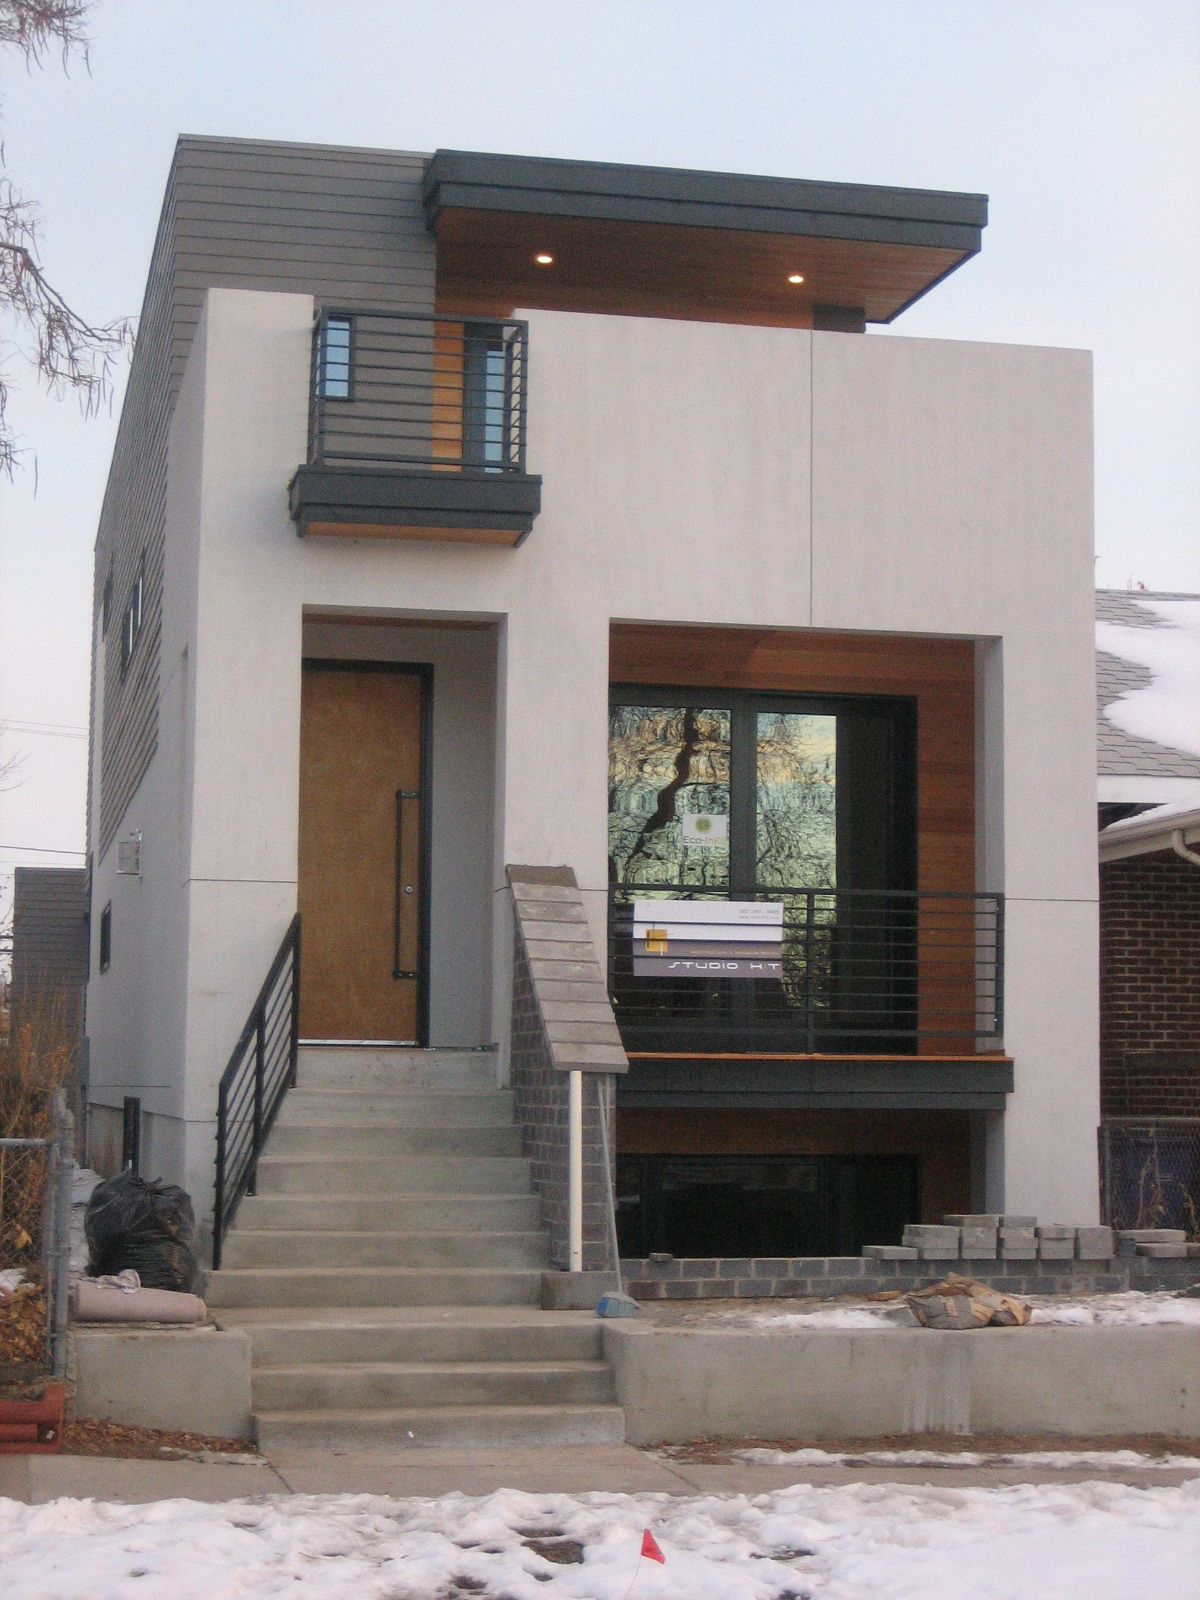 Pleasing 17 Best Ideas About Small Modern Houses On Pinterest Small Largest Home Design Picture Inspirations Pitcheantrous